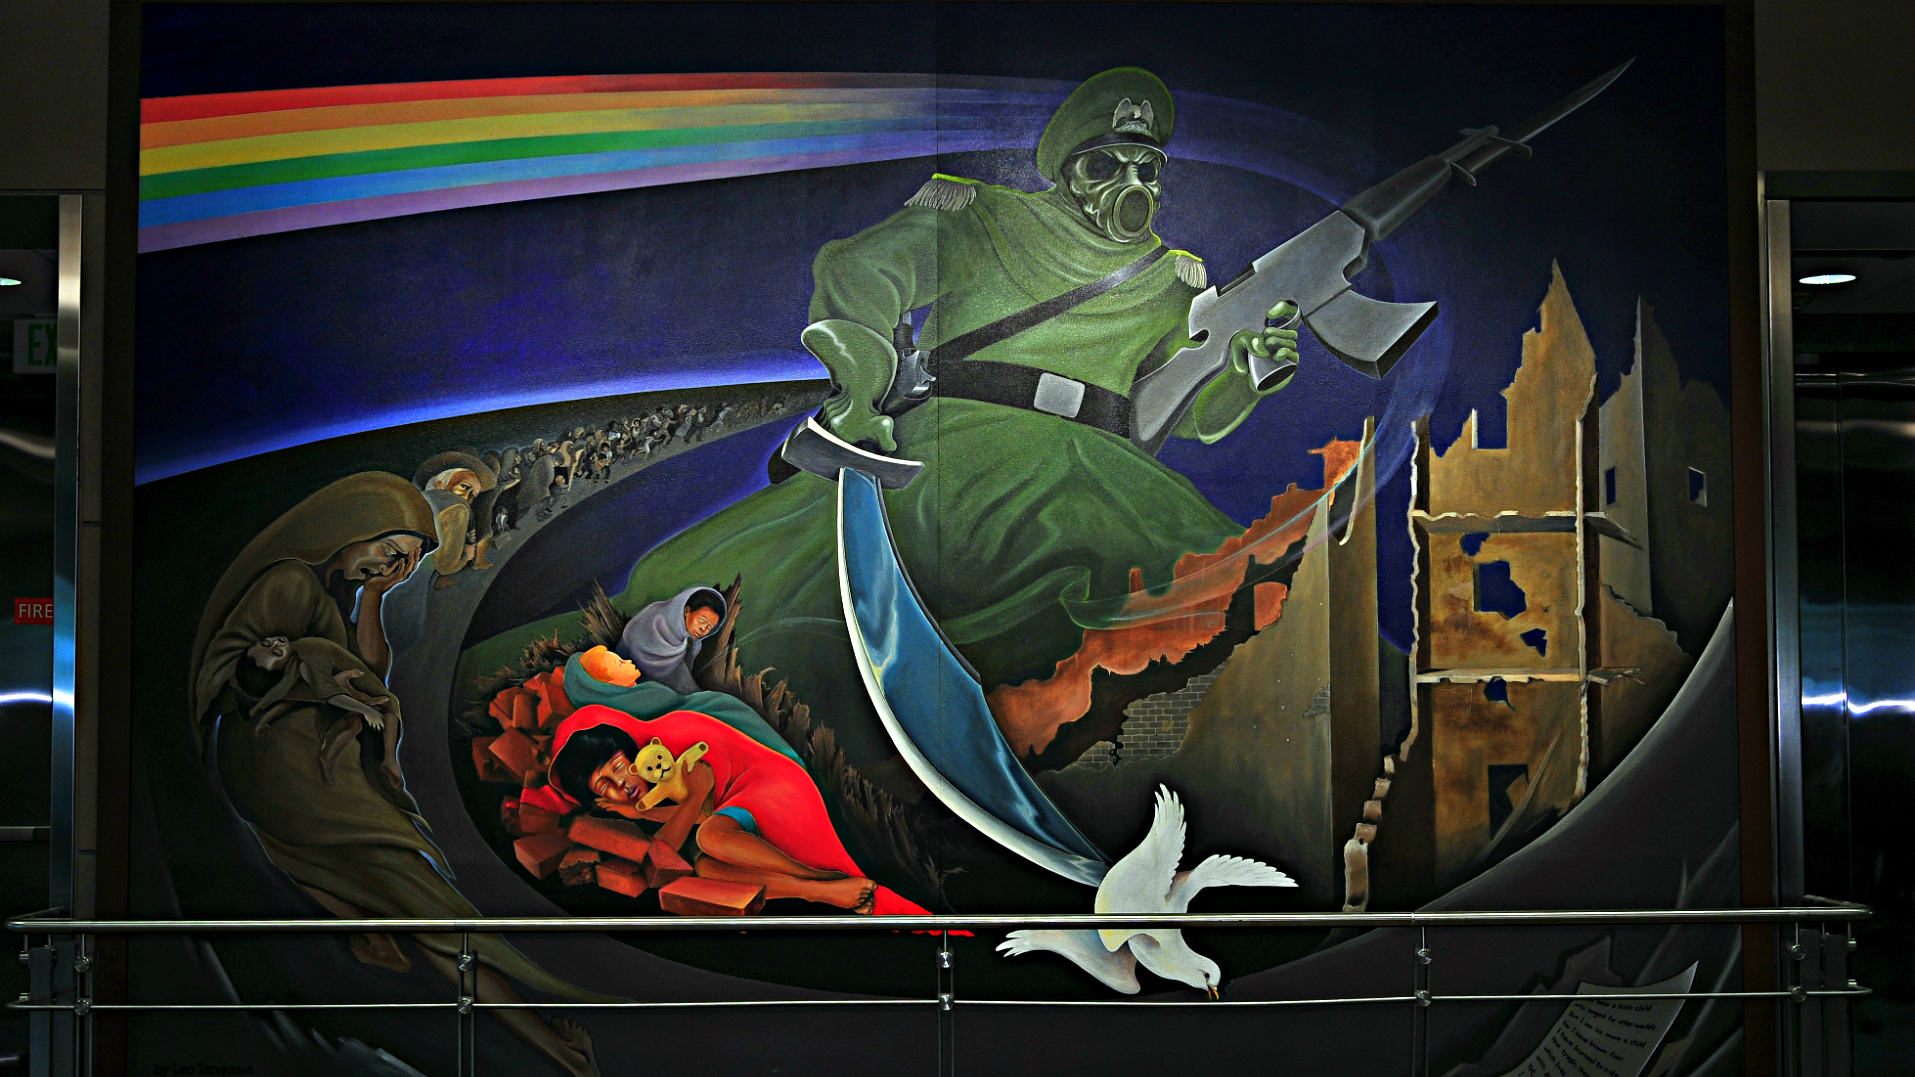 <p>With its lurid and unusual public art works, Denver International Airport is just one of Denver's scariest spots.</p>